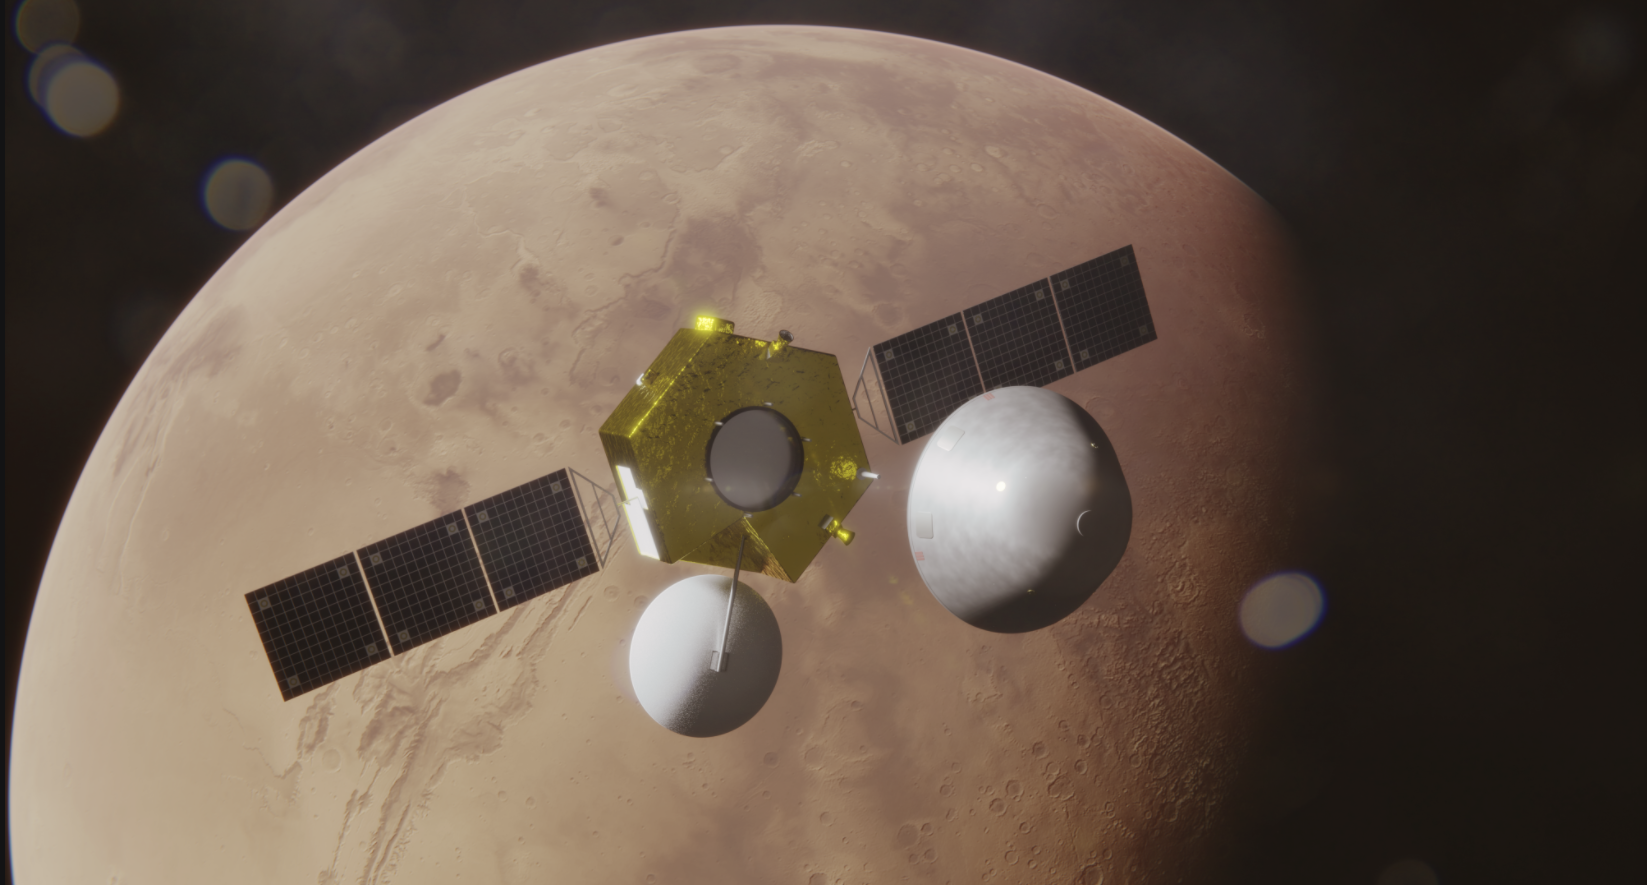 The Lander and Orbiter separate in Martian orbit ahead of the planned April 2021 landing